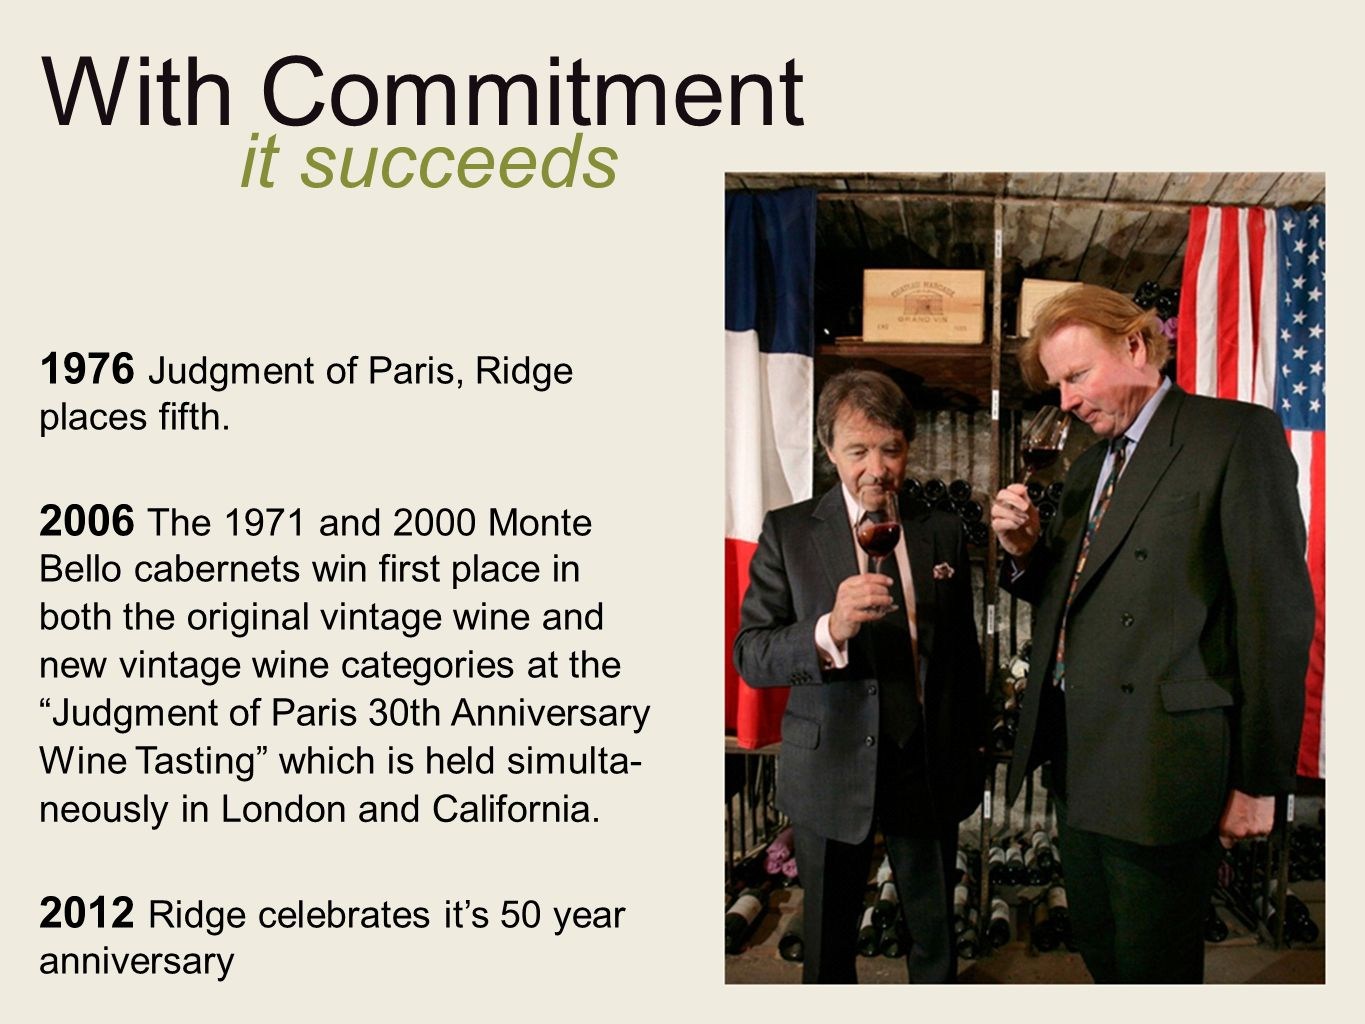 With Commitment it succeeds 1976 Judgment of Paris, Ridge places fifth.